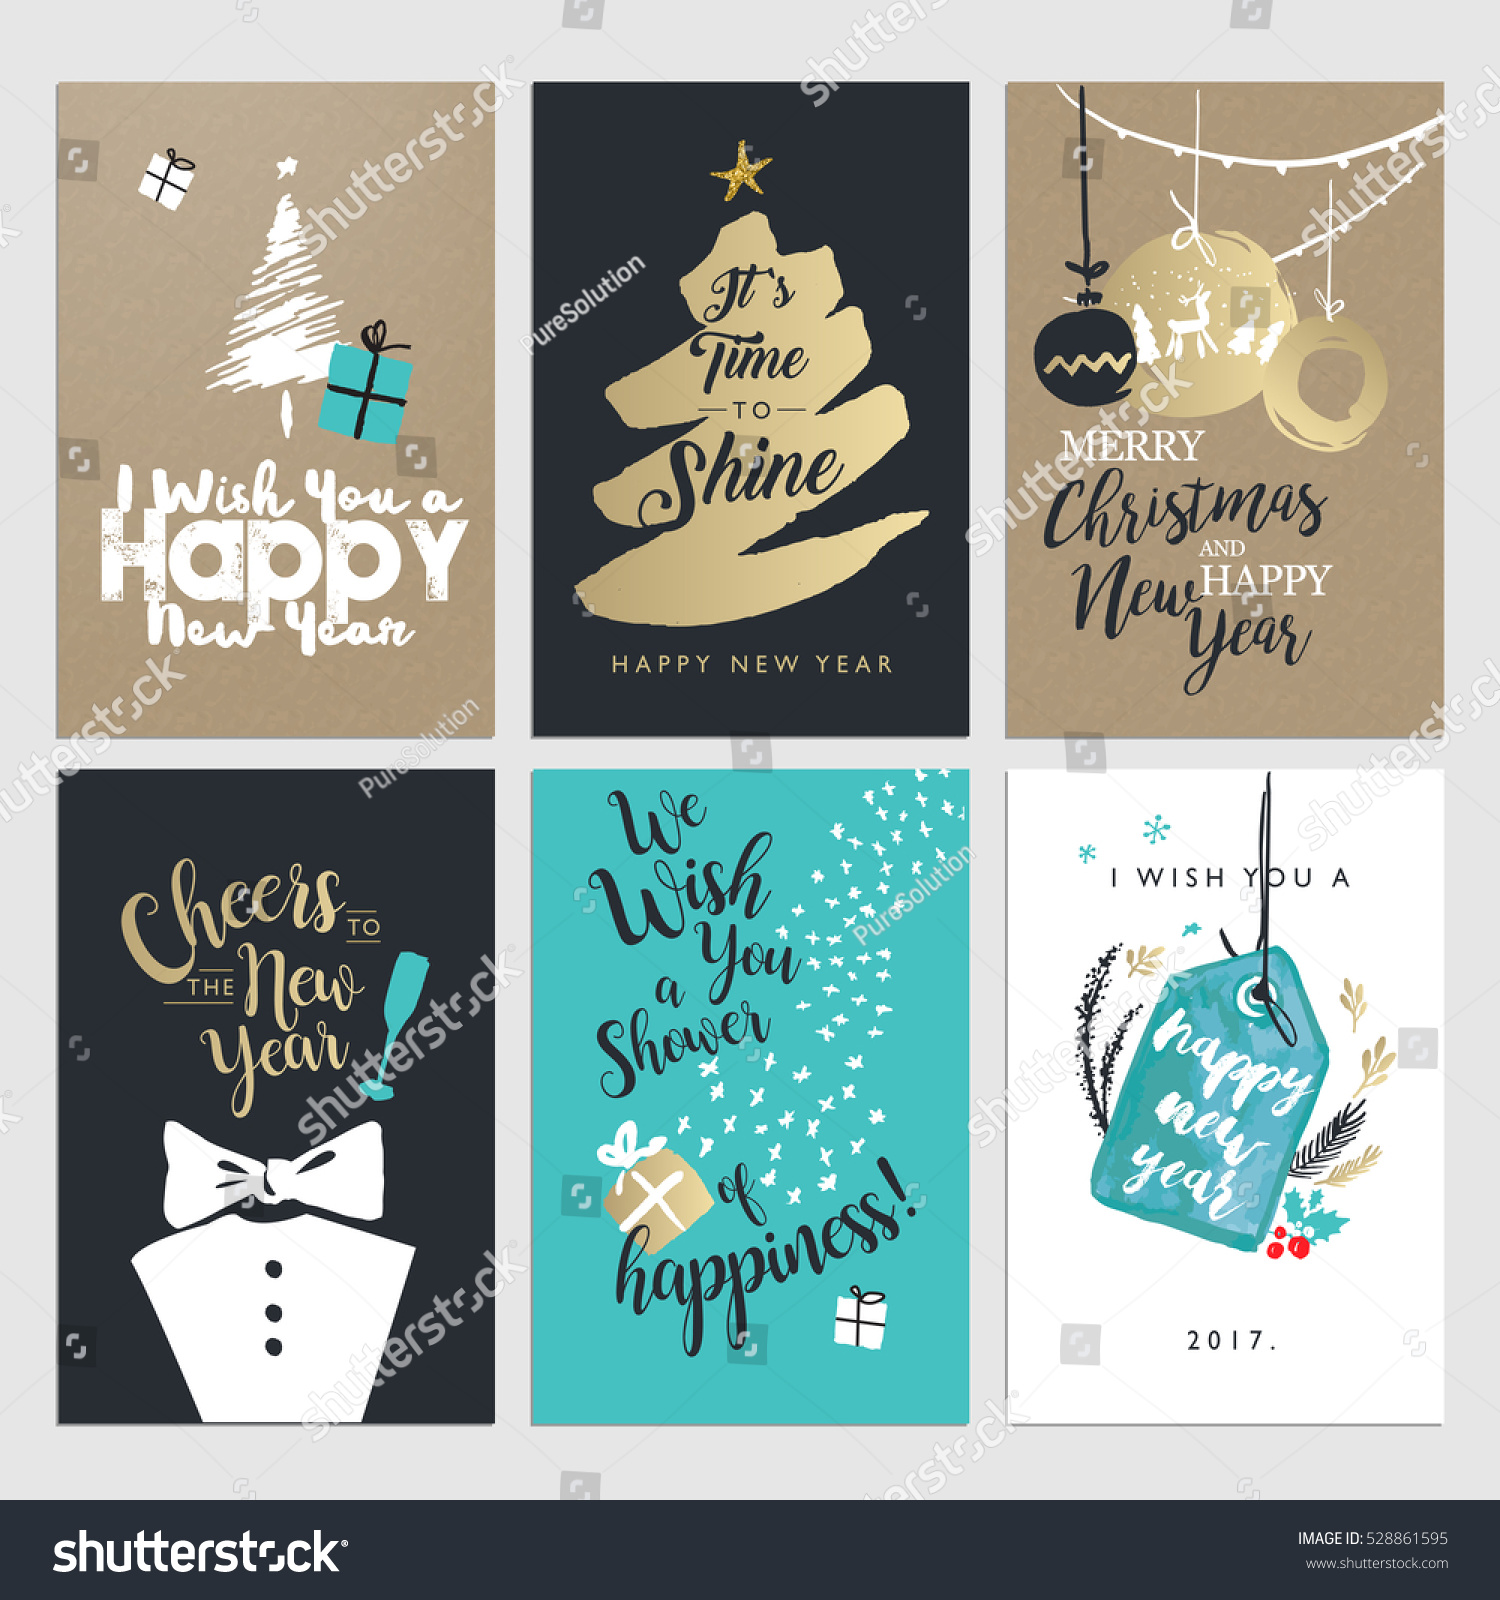 New year christmas greeting cards collection stock vector royalty new year and christmas greeting cards collection flat design vector illustration concepts for greeting cards m4hsunfo